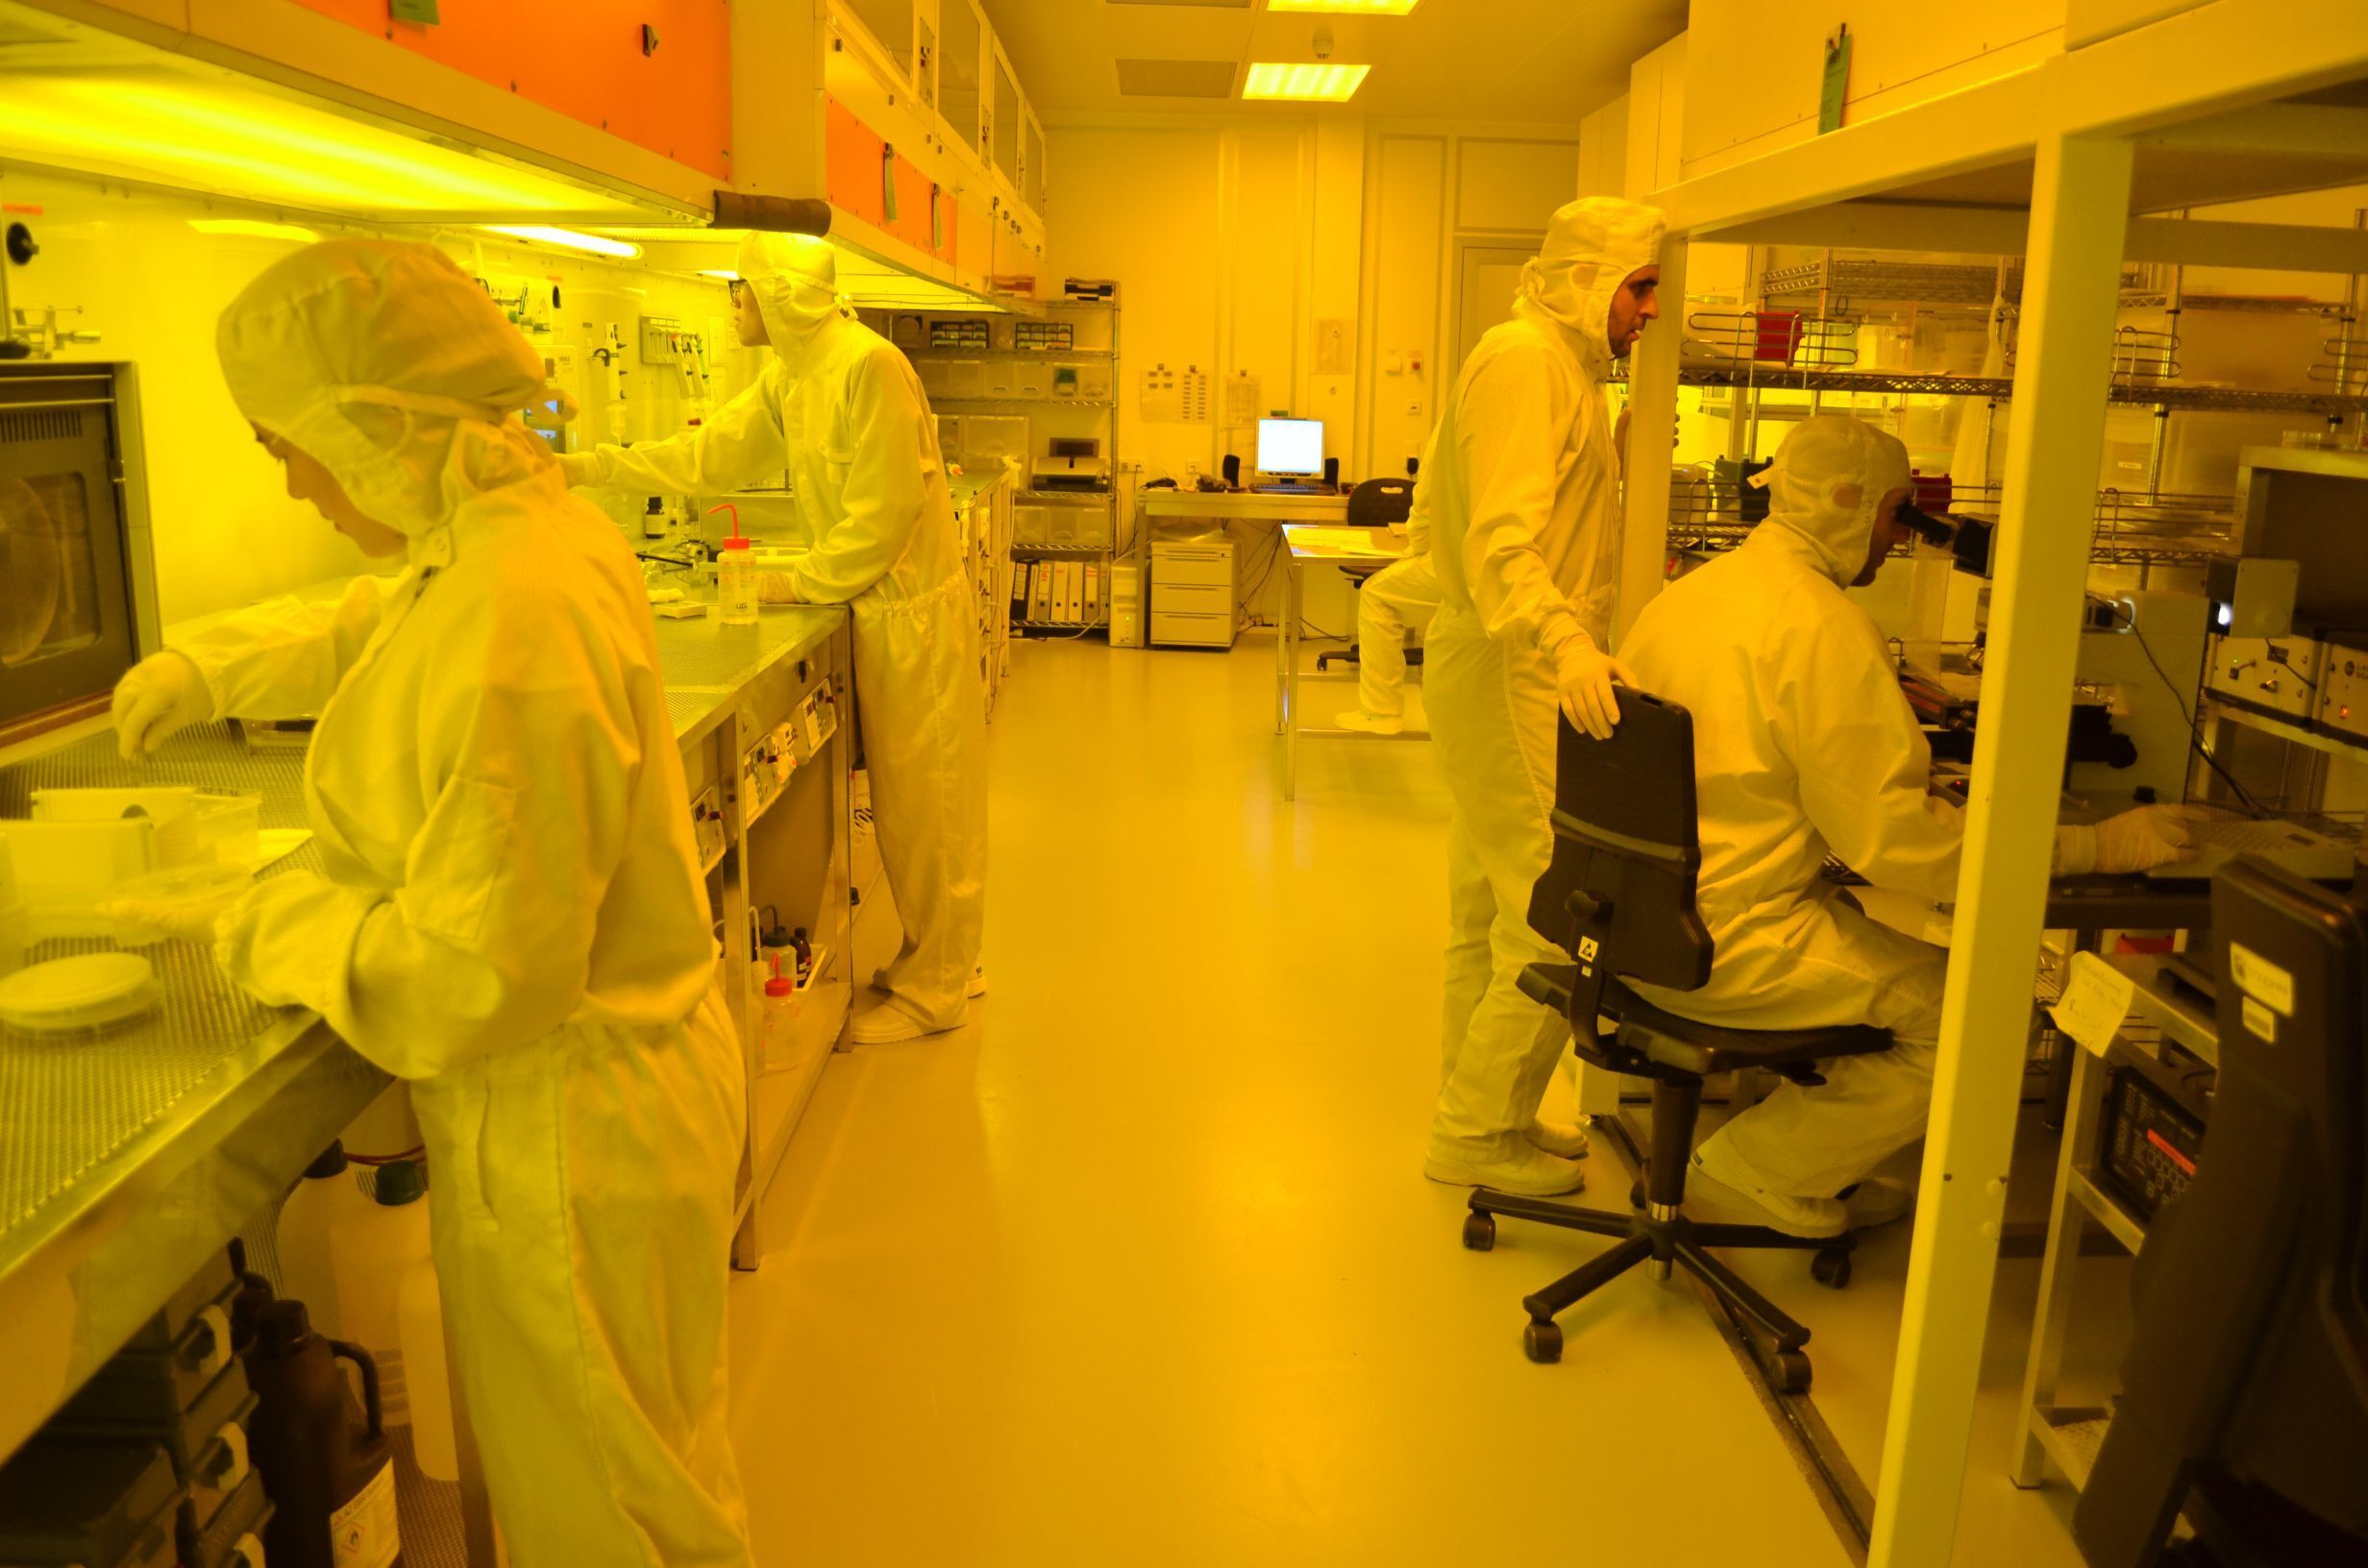 Cleanroom activities